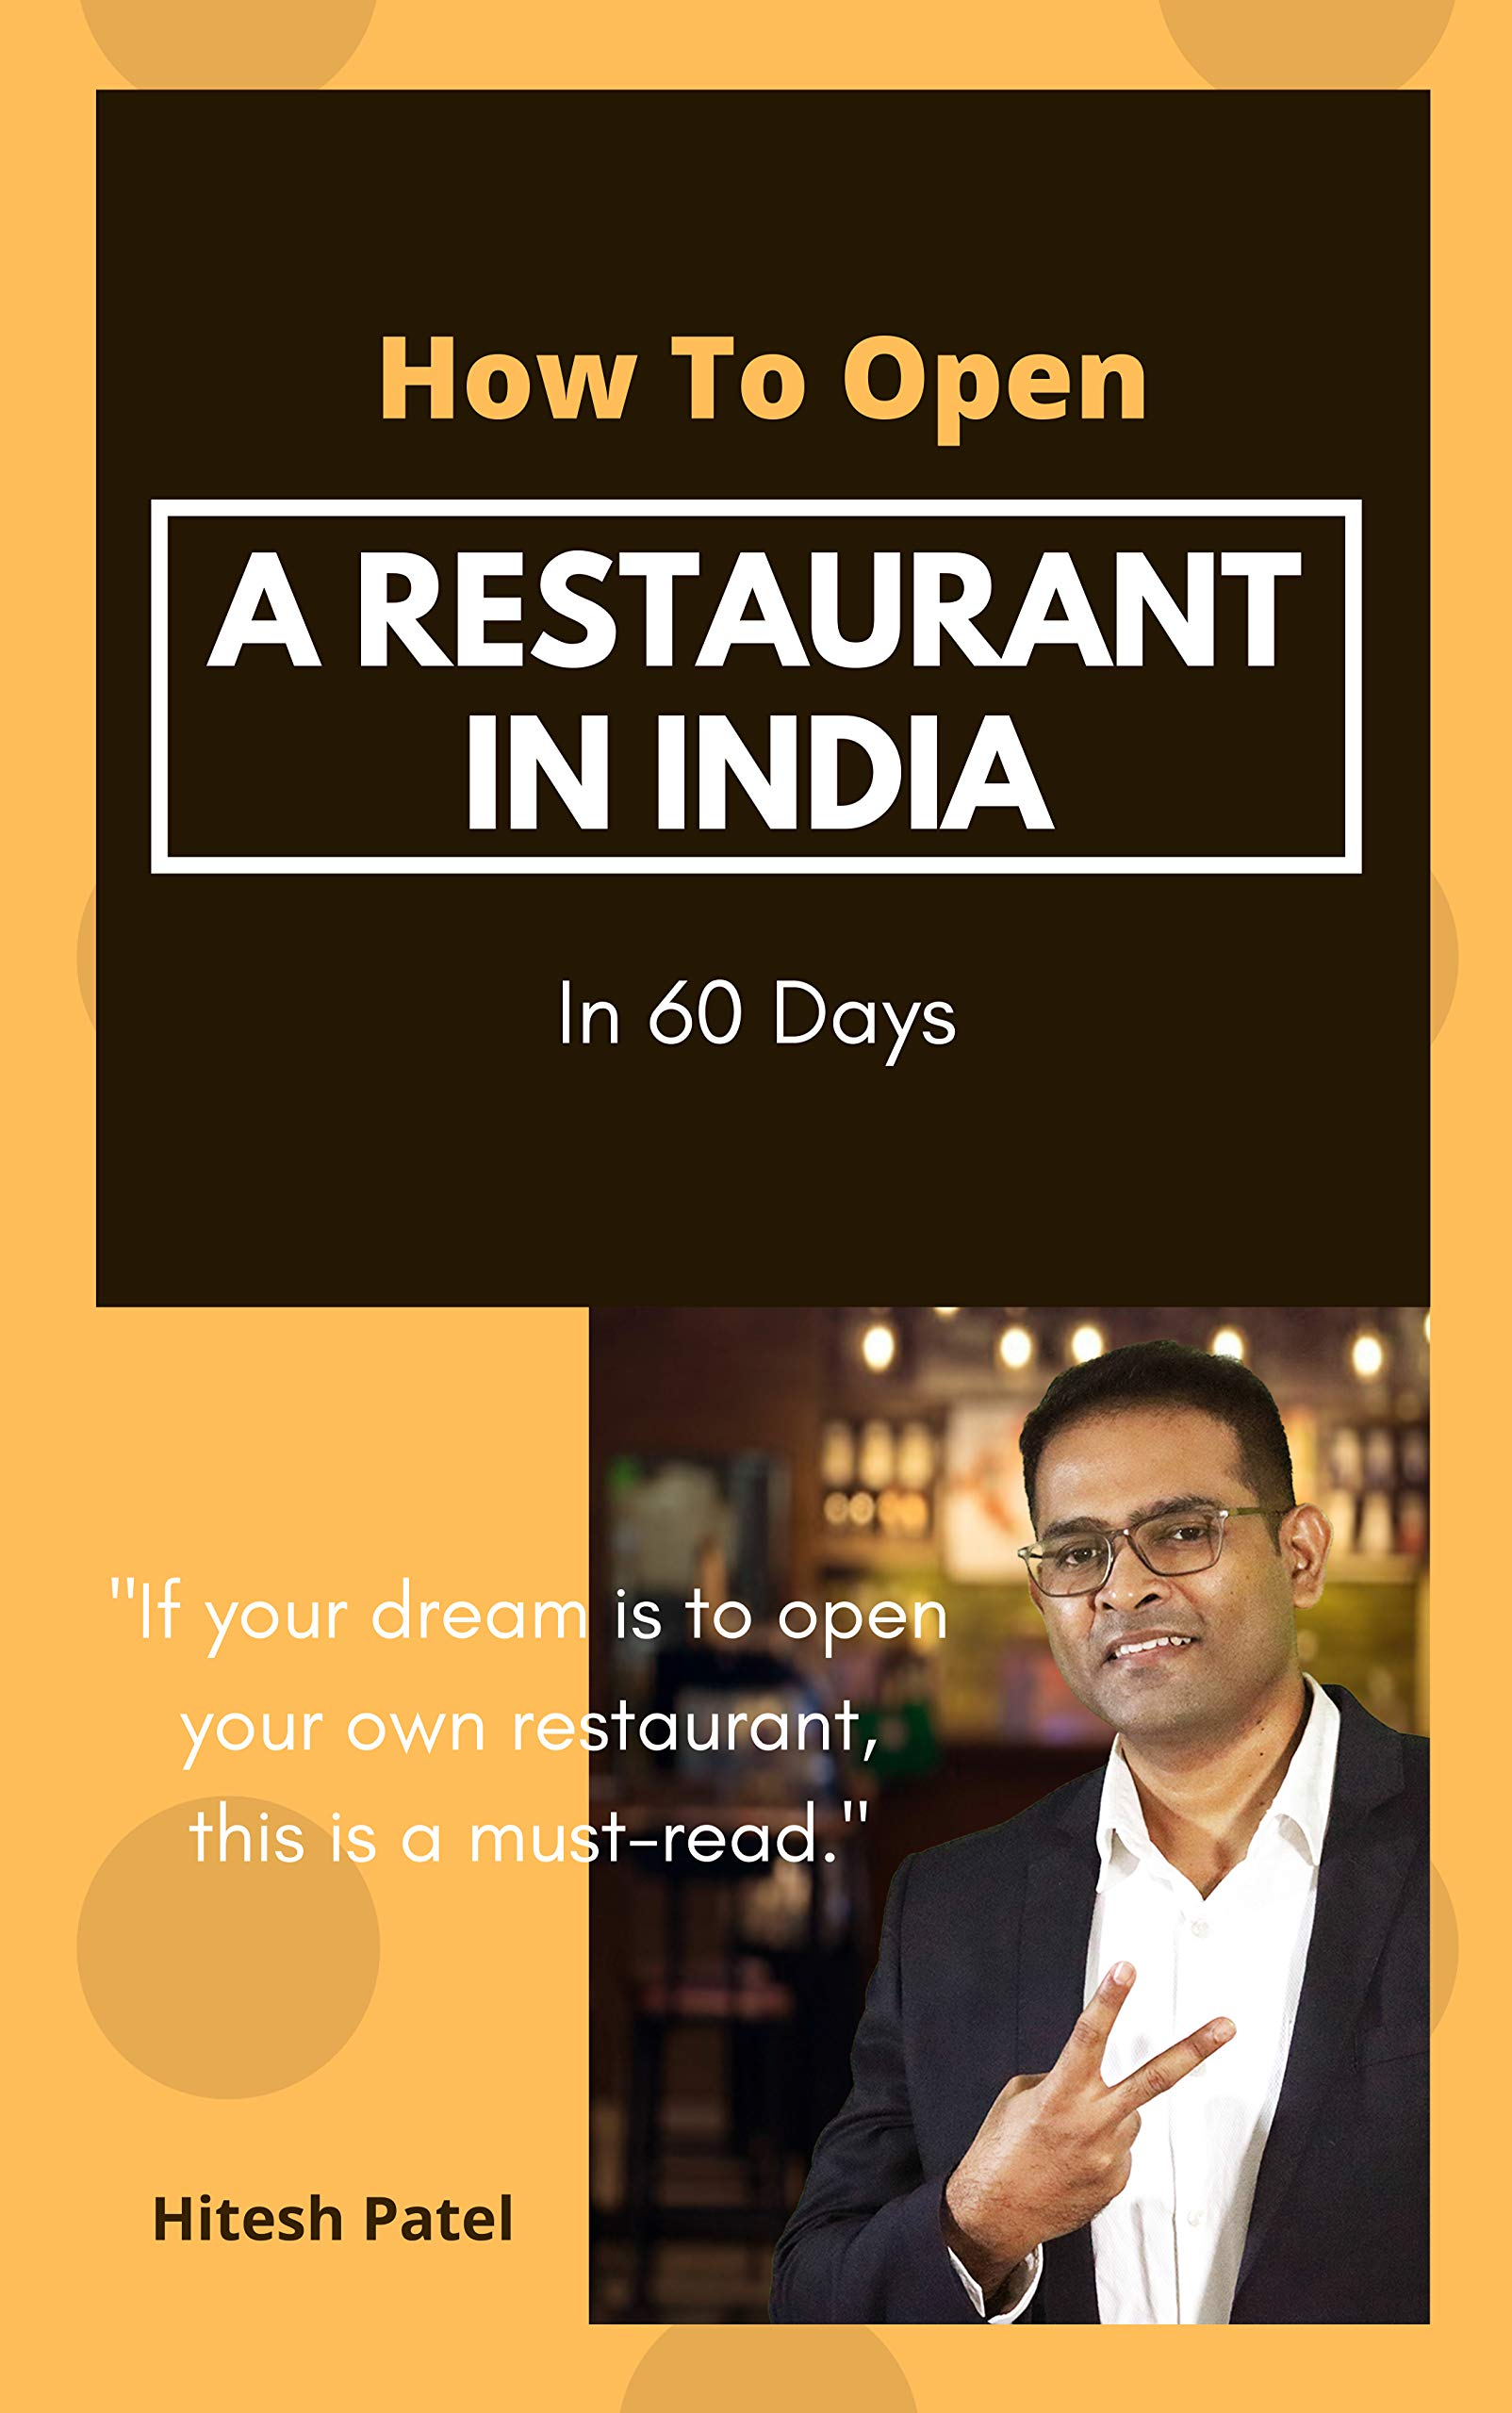 How To Open A Restaurant In India: In 60 Days